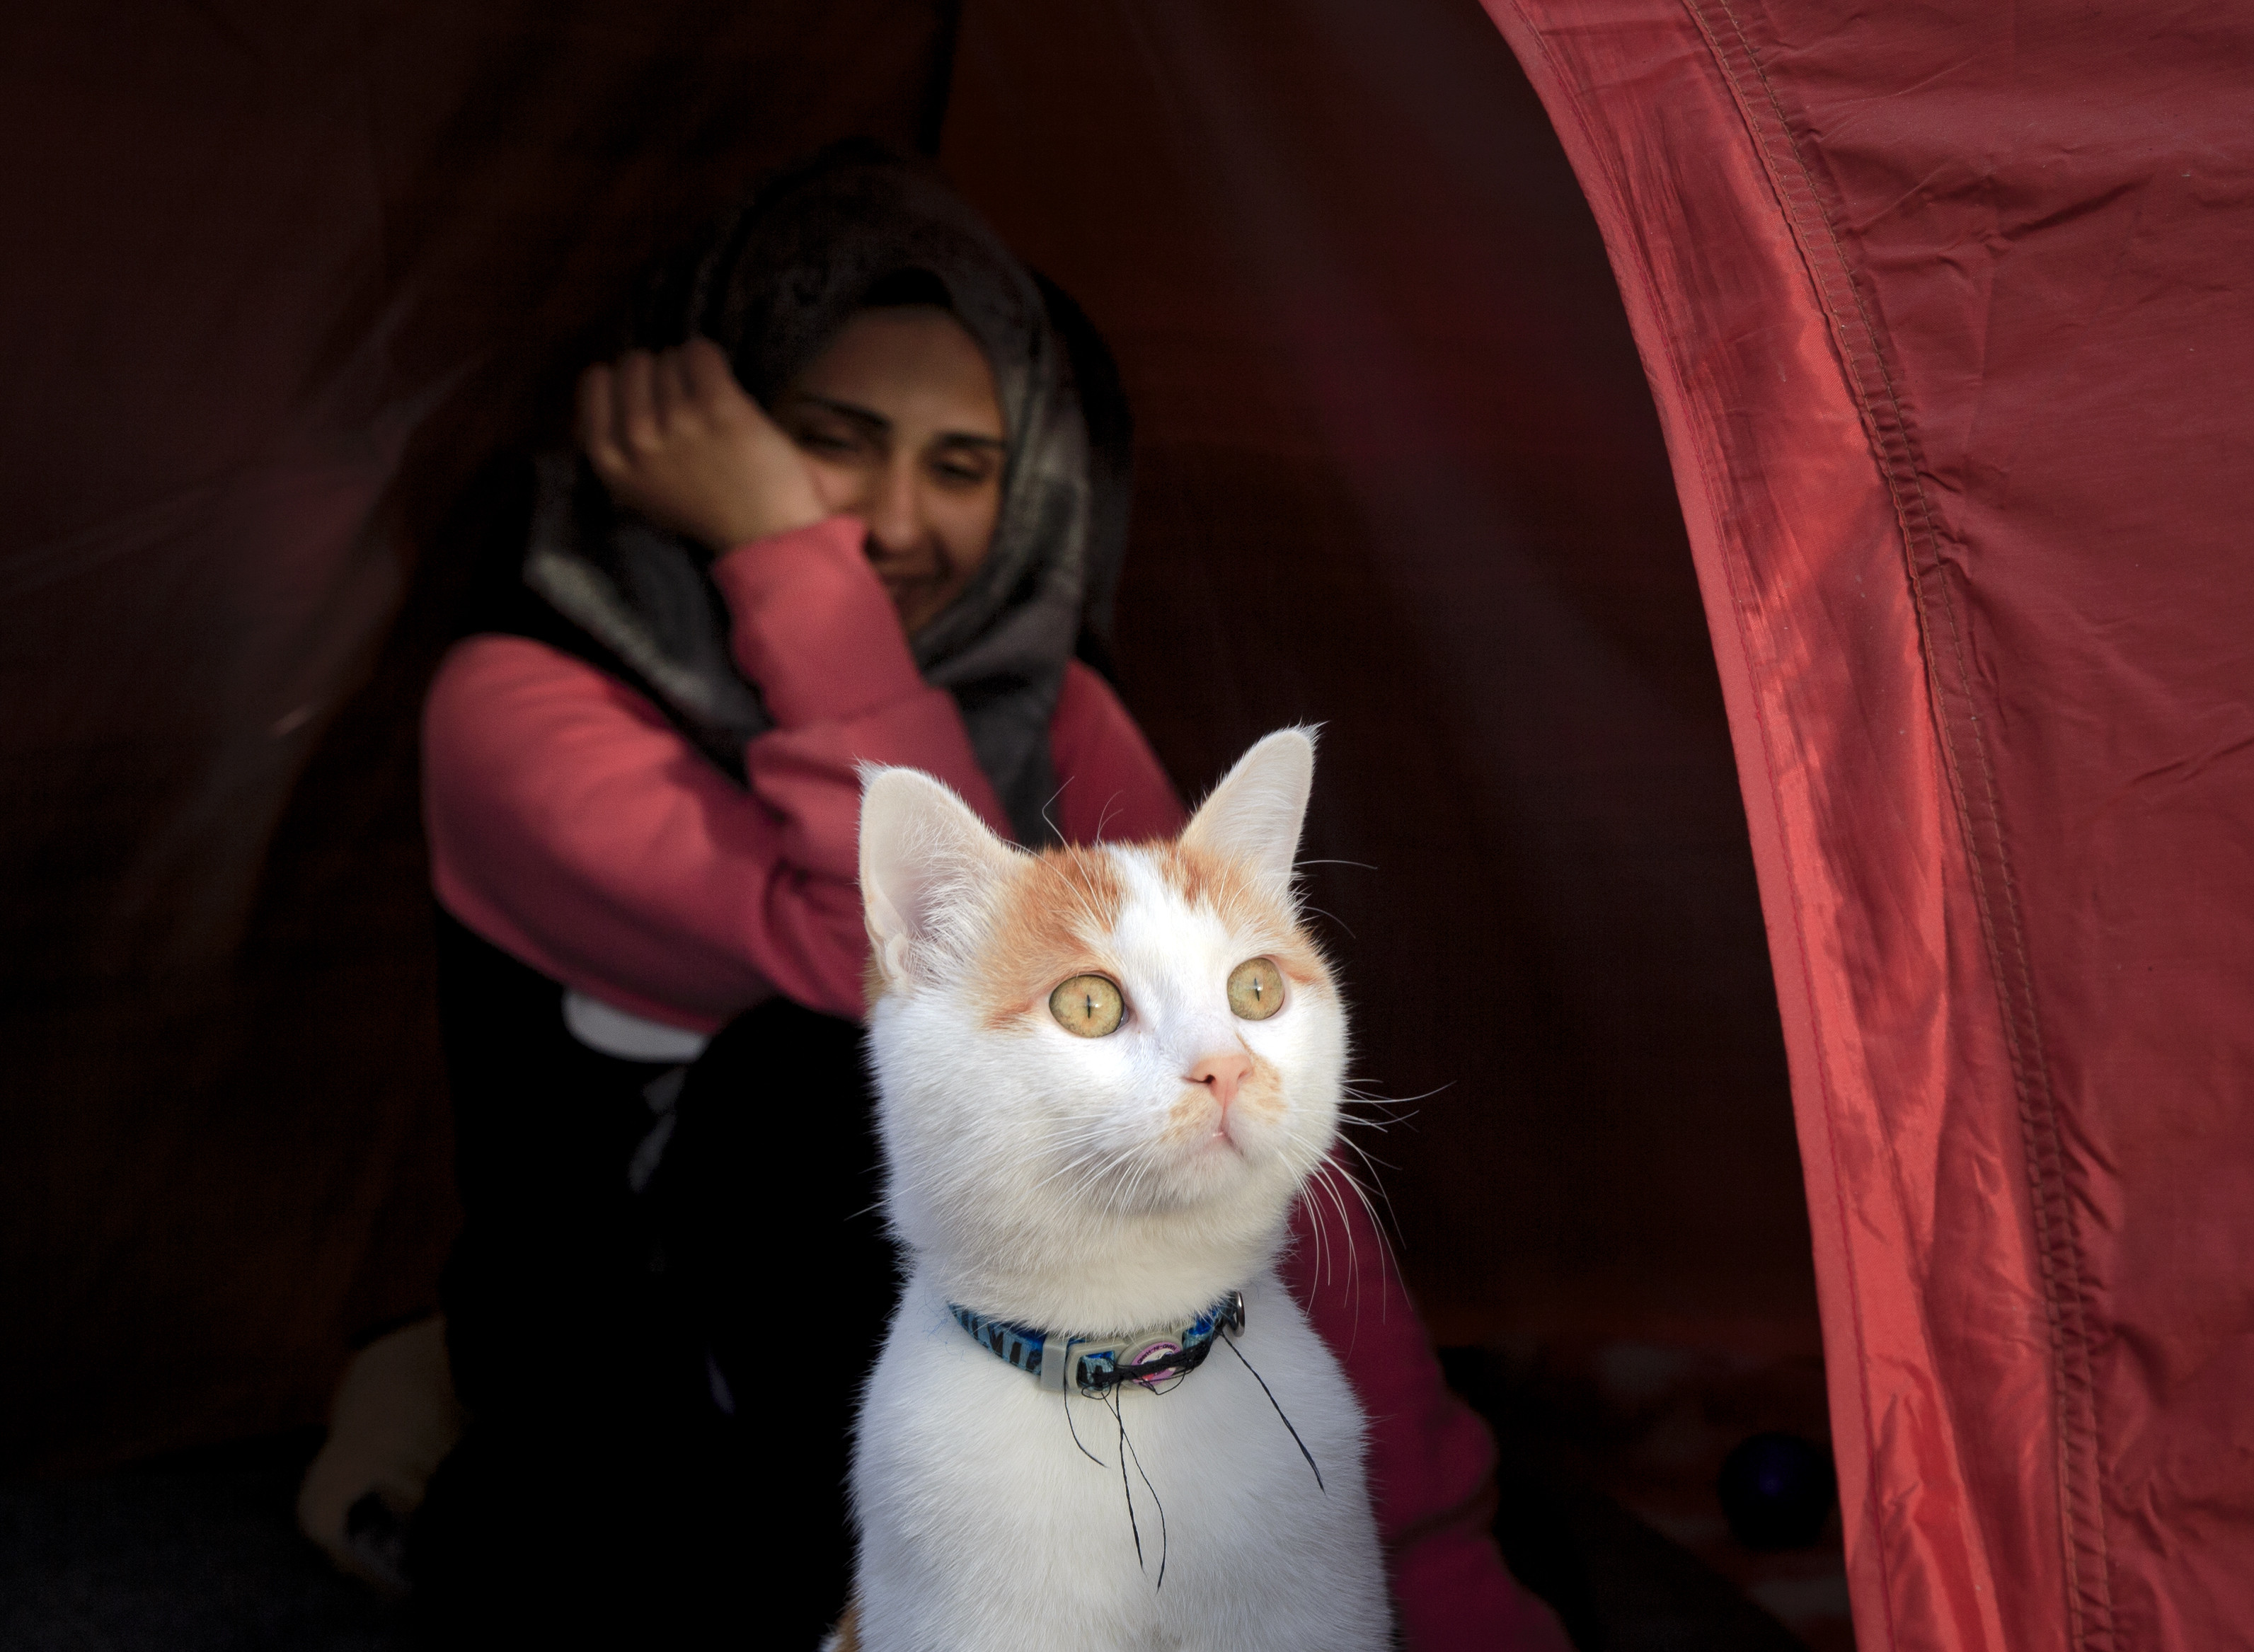 In this picture taken on March 6, 2016, Israa Abud smiles as family cat Taboush peers from the tent in Idomeni, Greece, near the border with Macedonia.  Nearly 70 years after Israa Abud al Hosary's grandparents fled Palestine, she is reliving their fate, forced to leave home with nearly nothing and start again from scratch in a foreign land. (AP Photo/Vadim Ghirda)